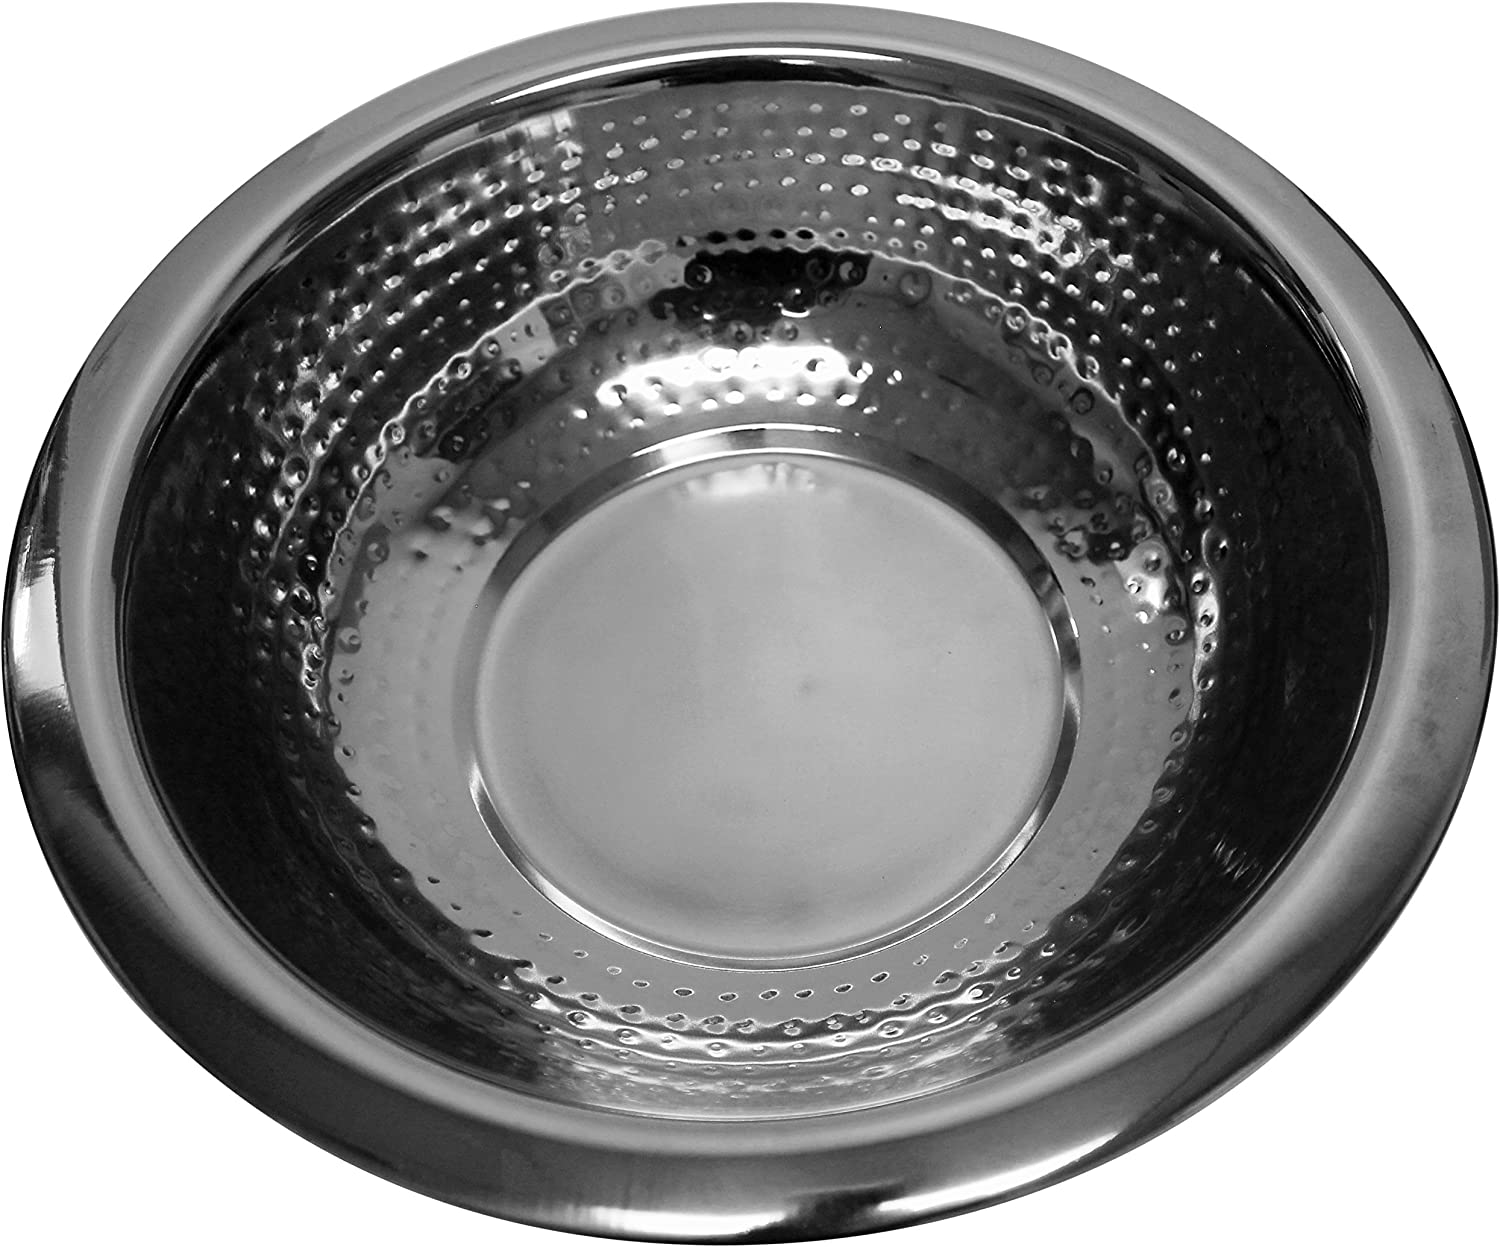 Majestic Giftware WB5750 Stainless Steel Wash Bowl, 3 X 12